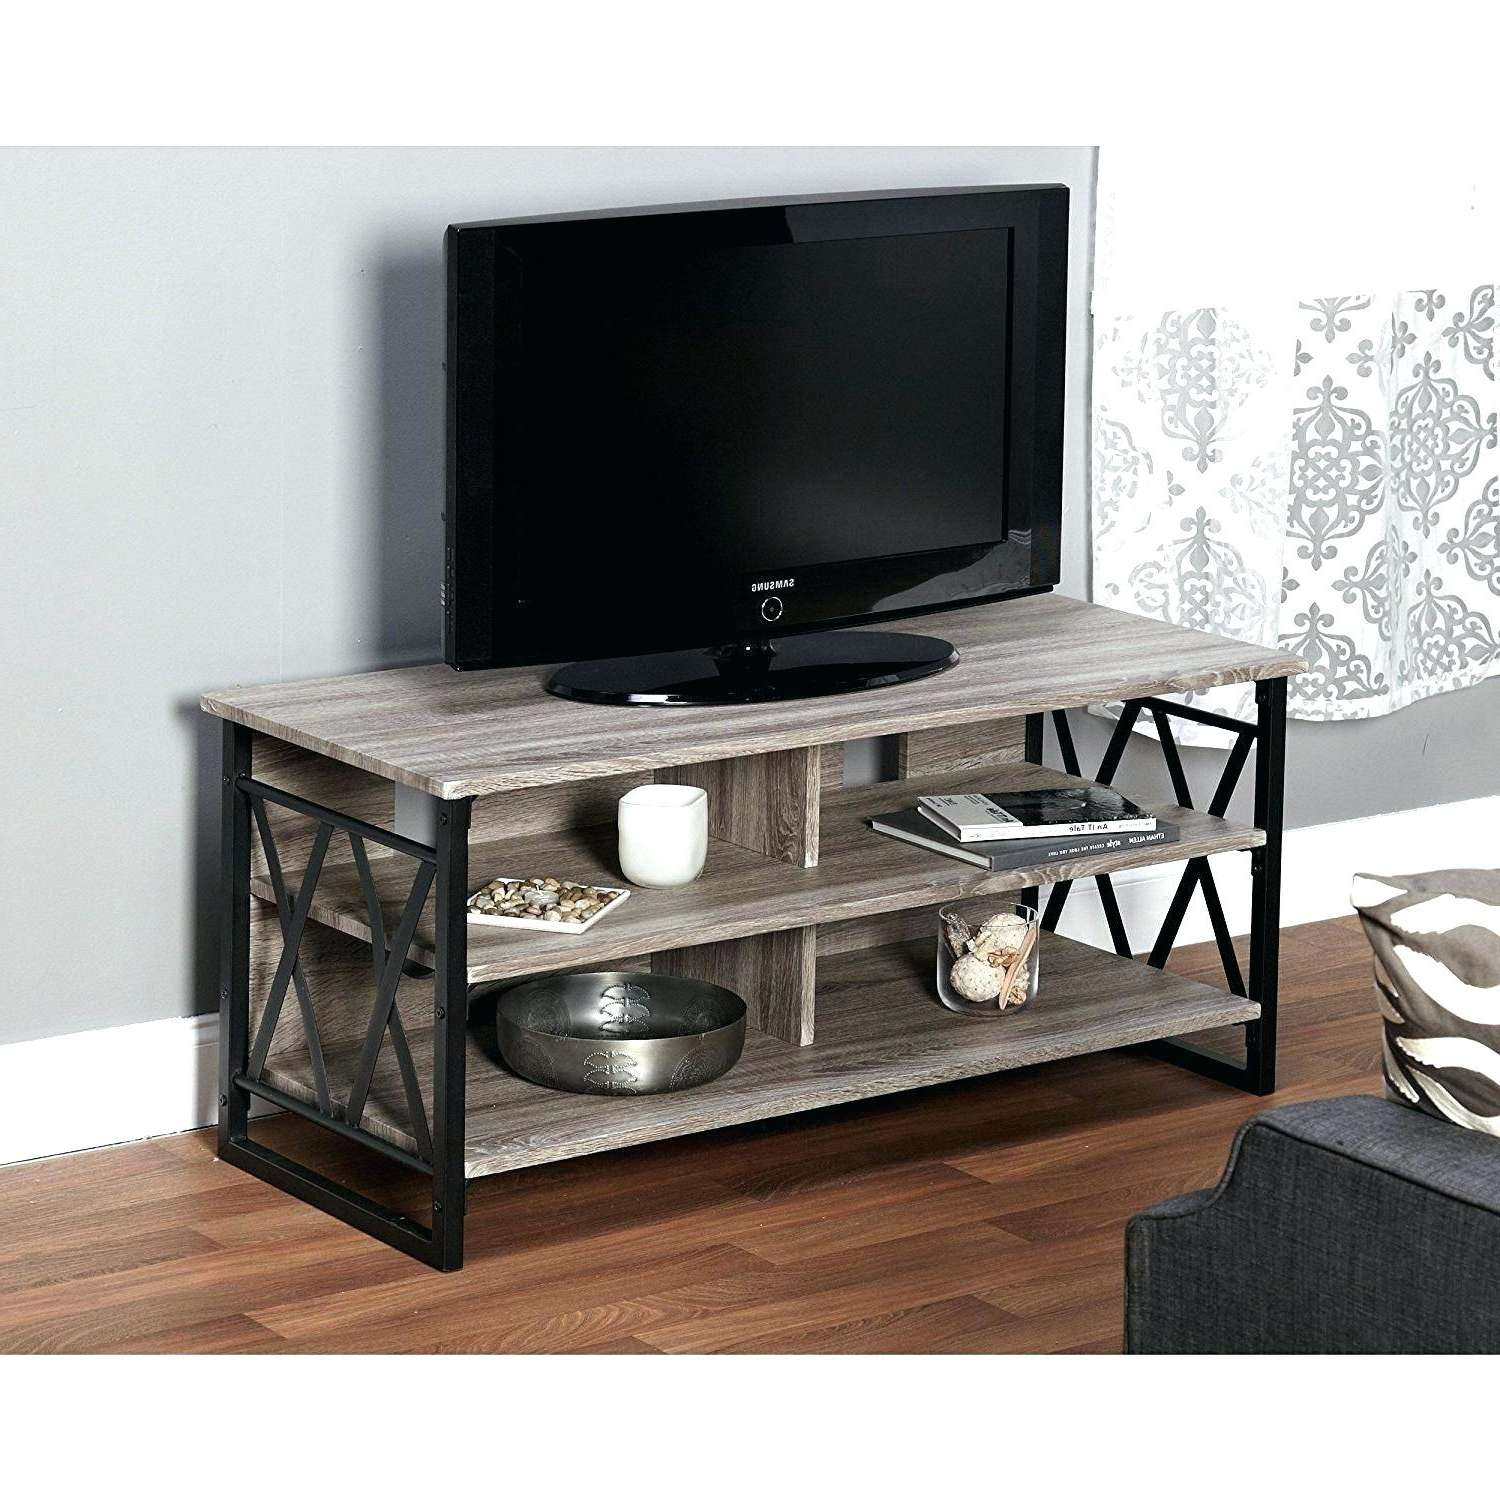 Tv Stand : Oriental Tv Stand Black Oriental Tv Stand (View 12 of 20)